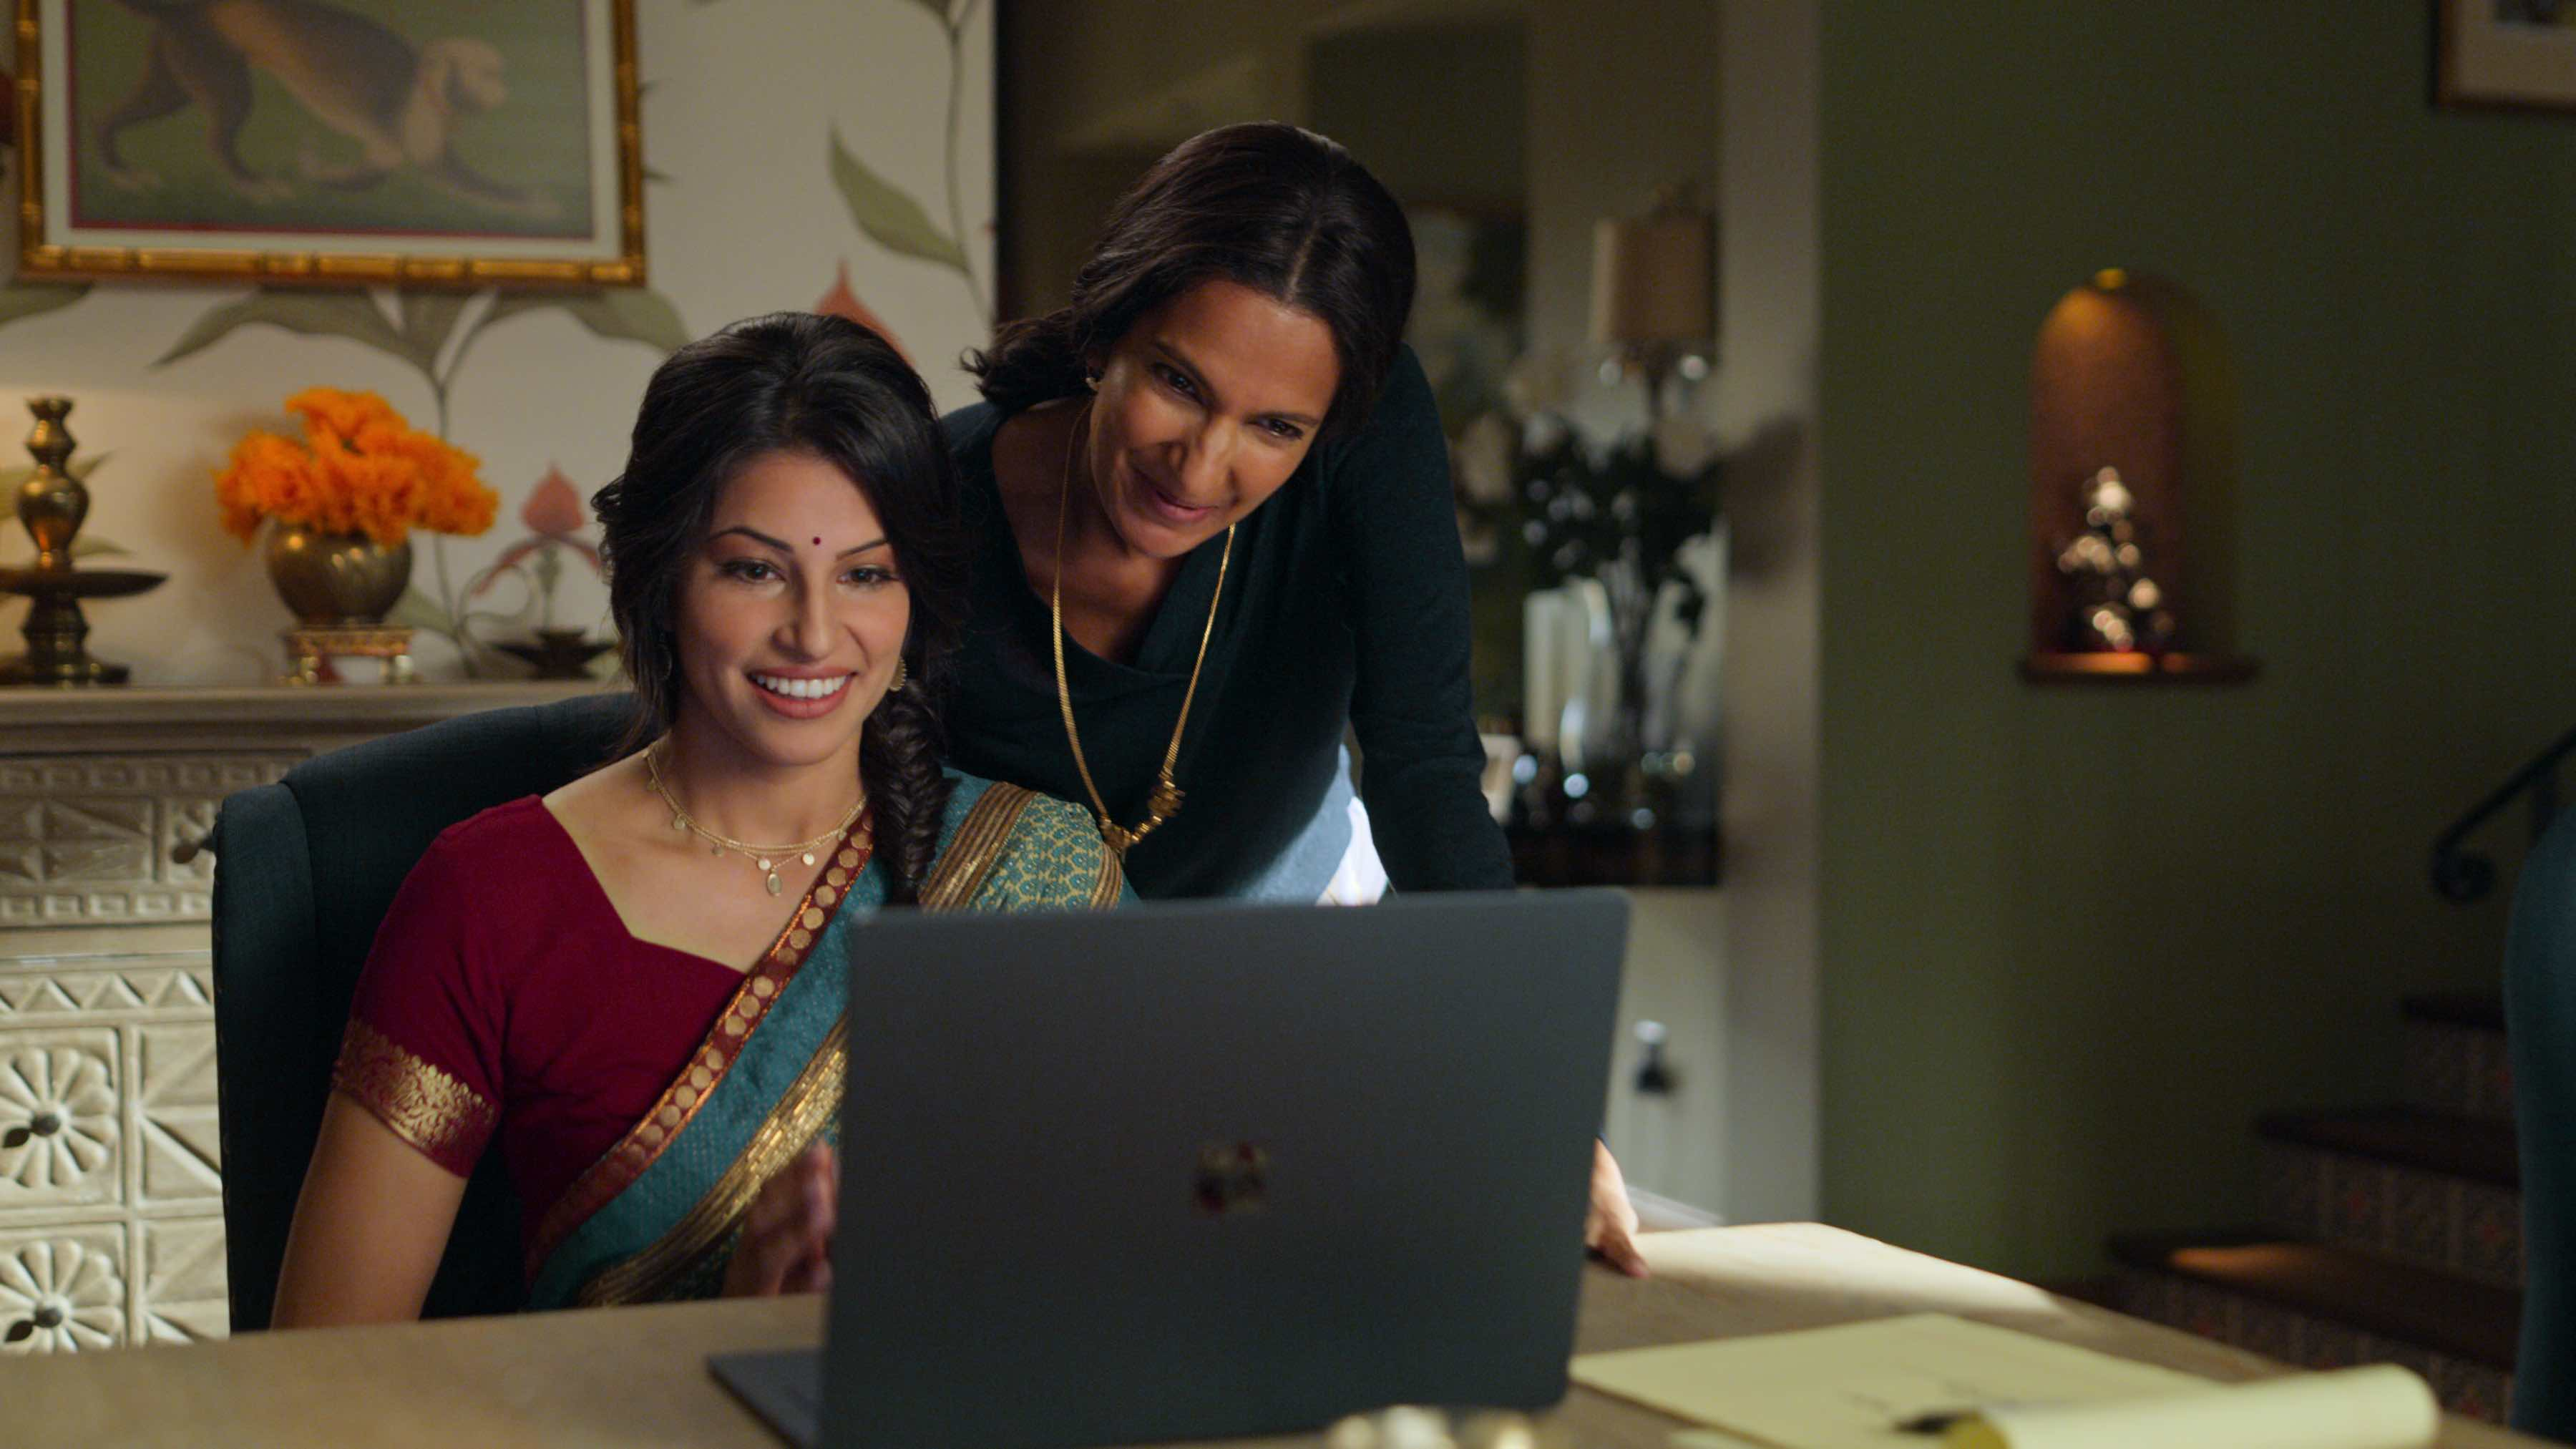 Kamala (Richa Moorjani) and Nalini (Poorna Jagannathan) on a video conference call with Kamala's prospective in-laws (Netflix)